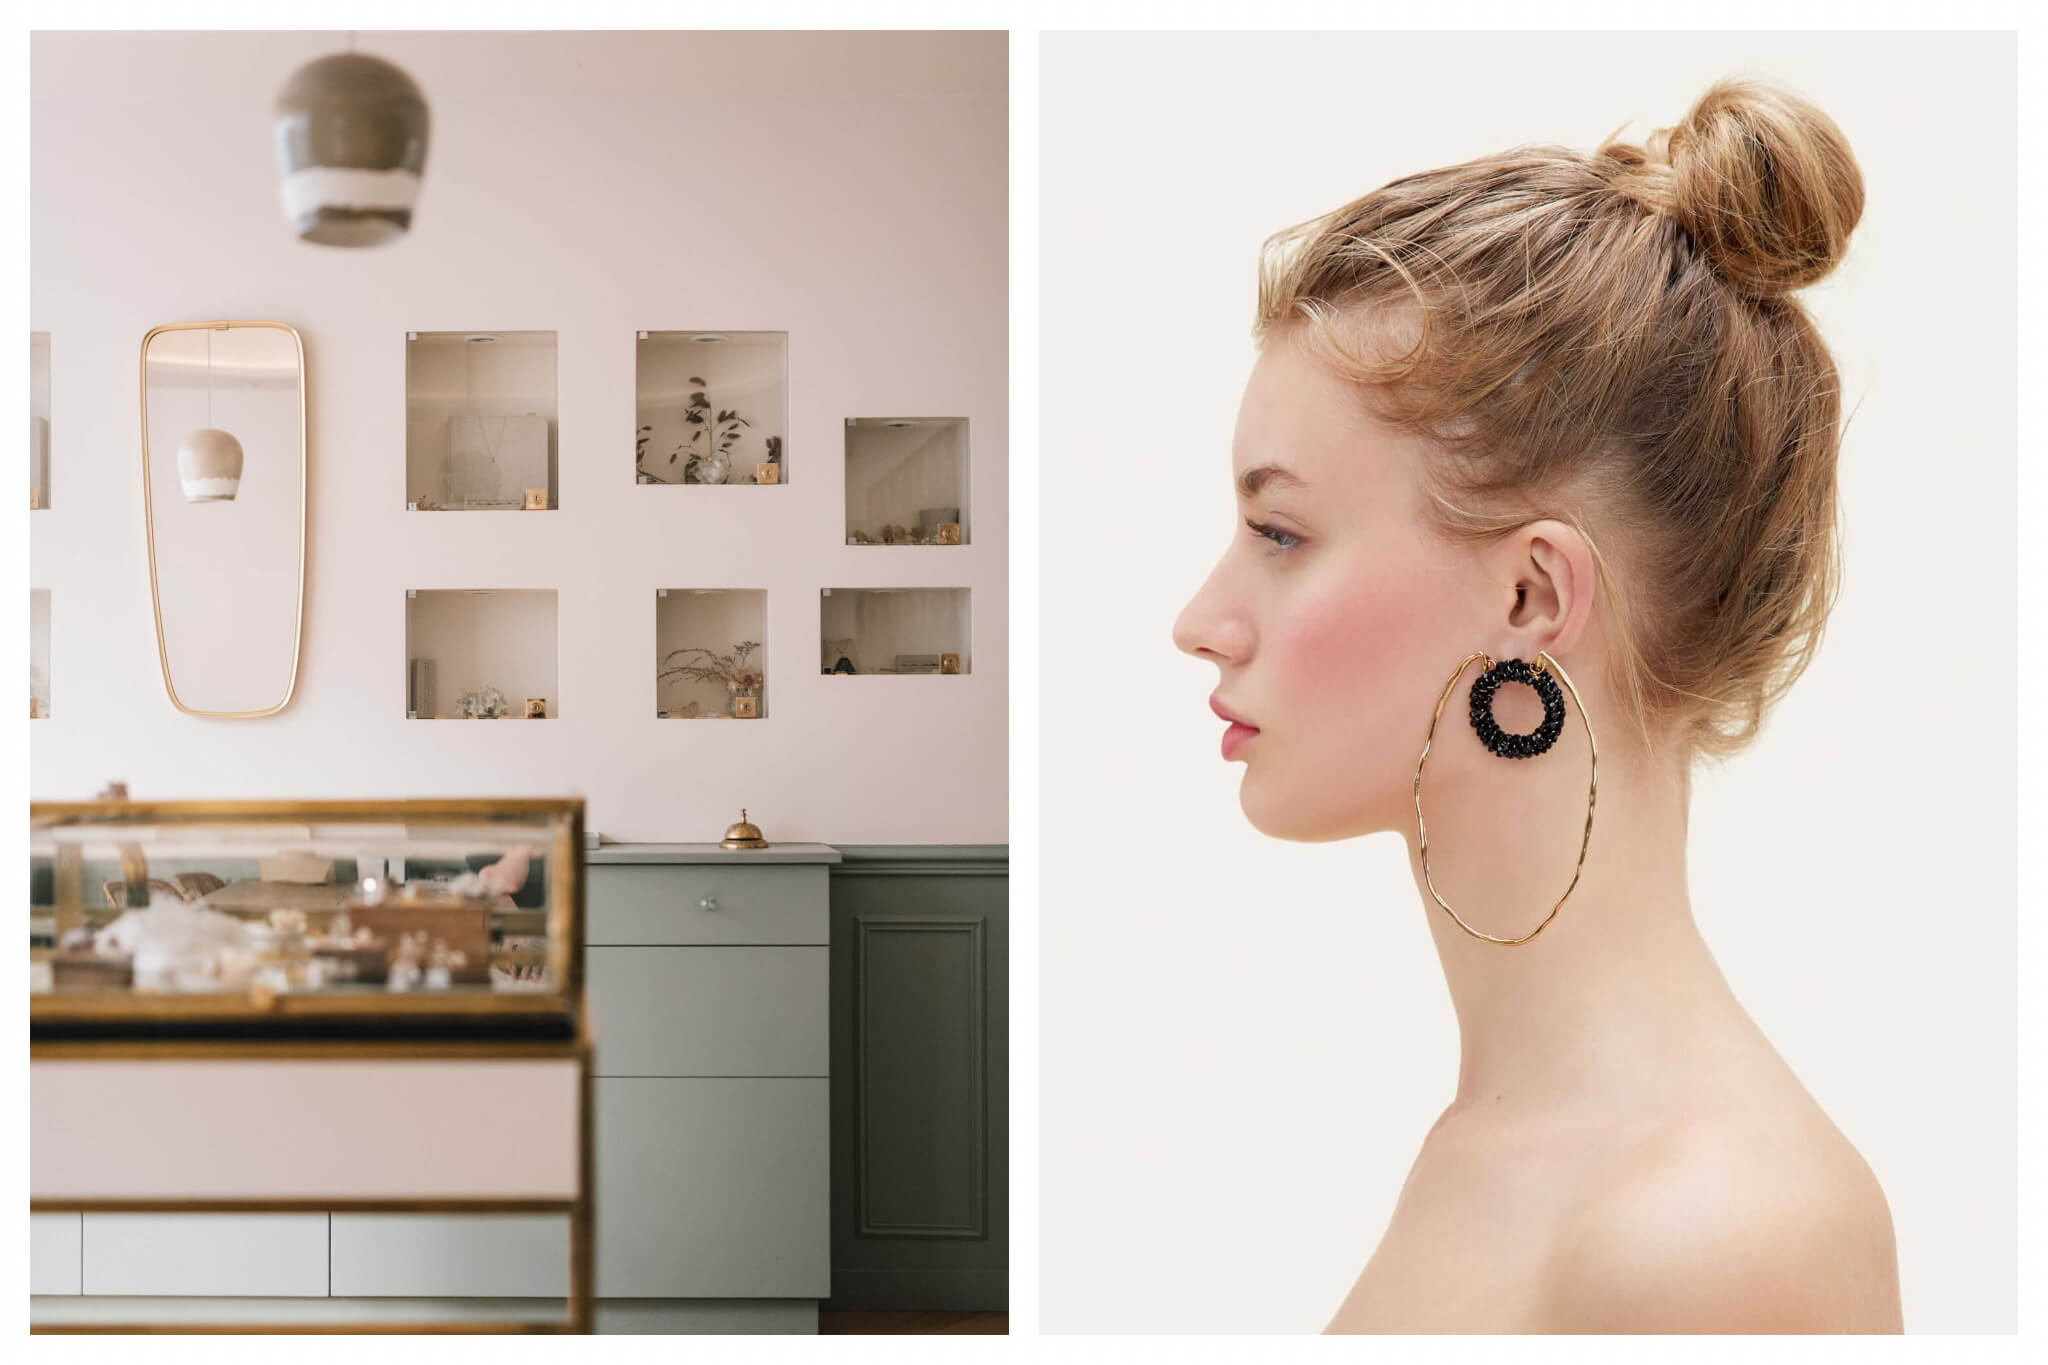 On left: The sophisticated, minimalist space Myrtille Beck creates for its clients. The brand, located in, Paris' ninth arrondissement, is known for its dainty and elegant jewelry. On right: A double-hoop earring by Jacquemus, an up-and-coming designer whose creations are stocked in the Galeries Lafayette on the Champs Elysées in Paris.